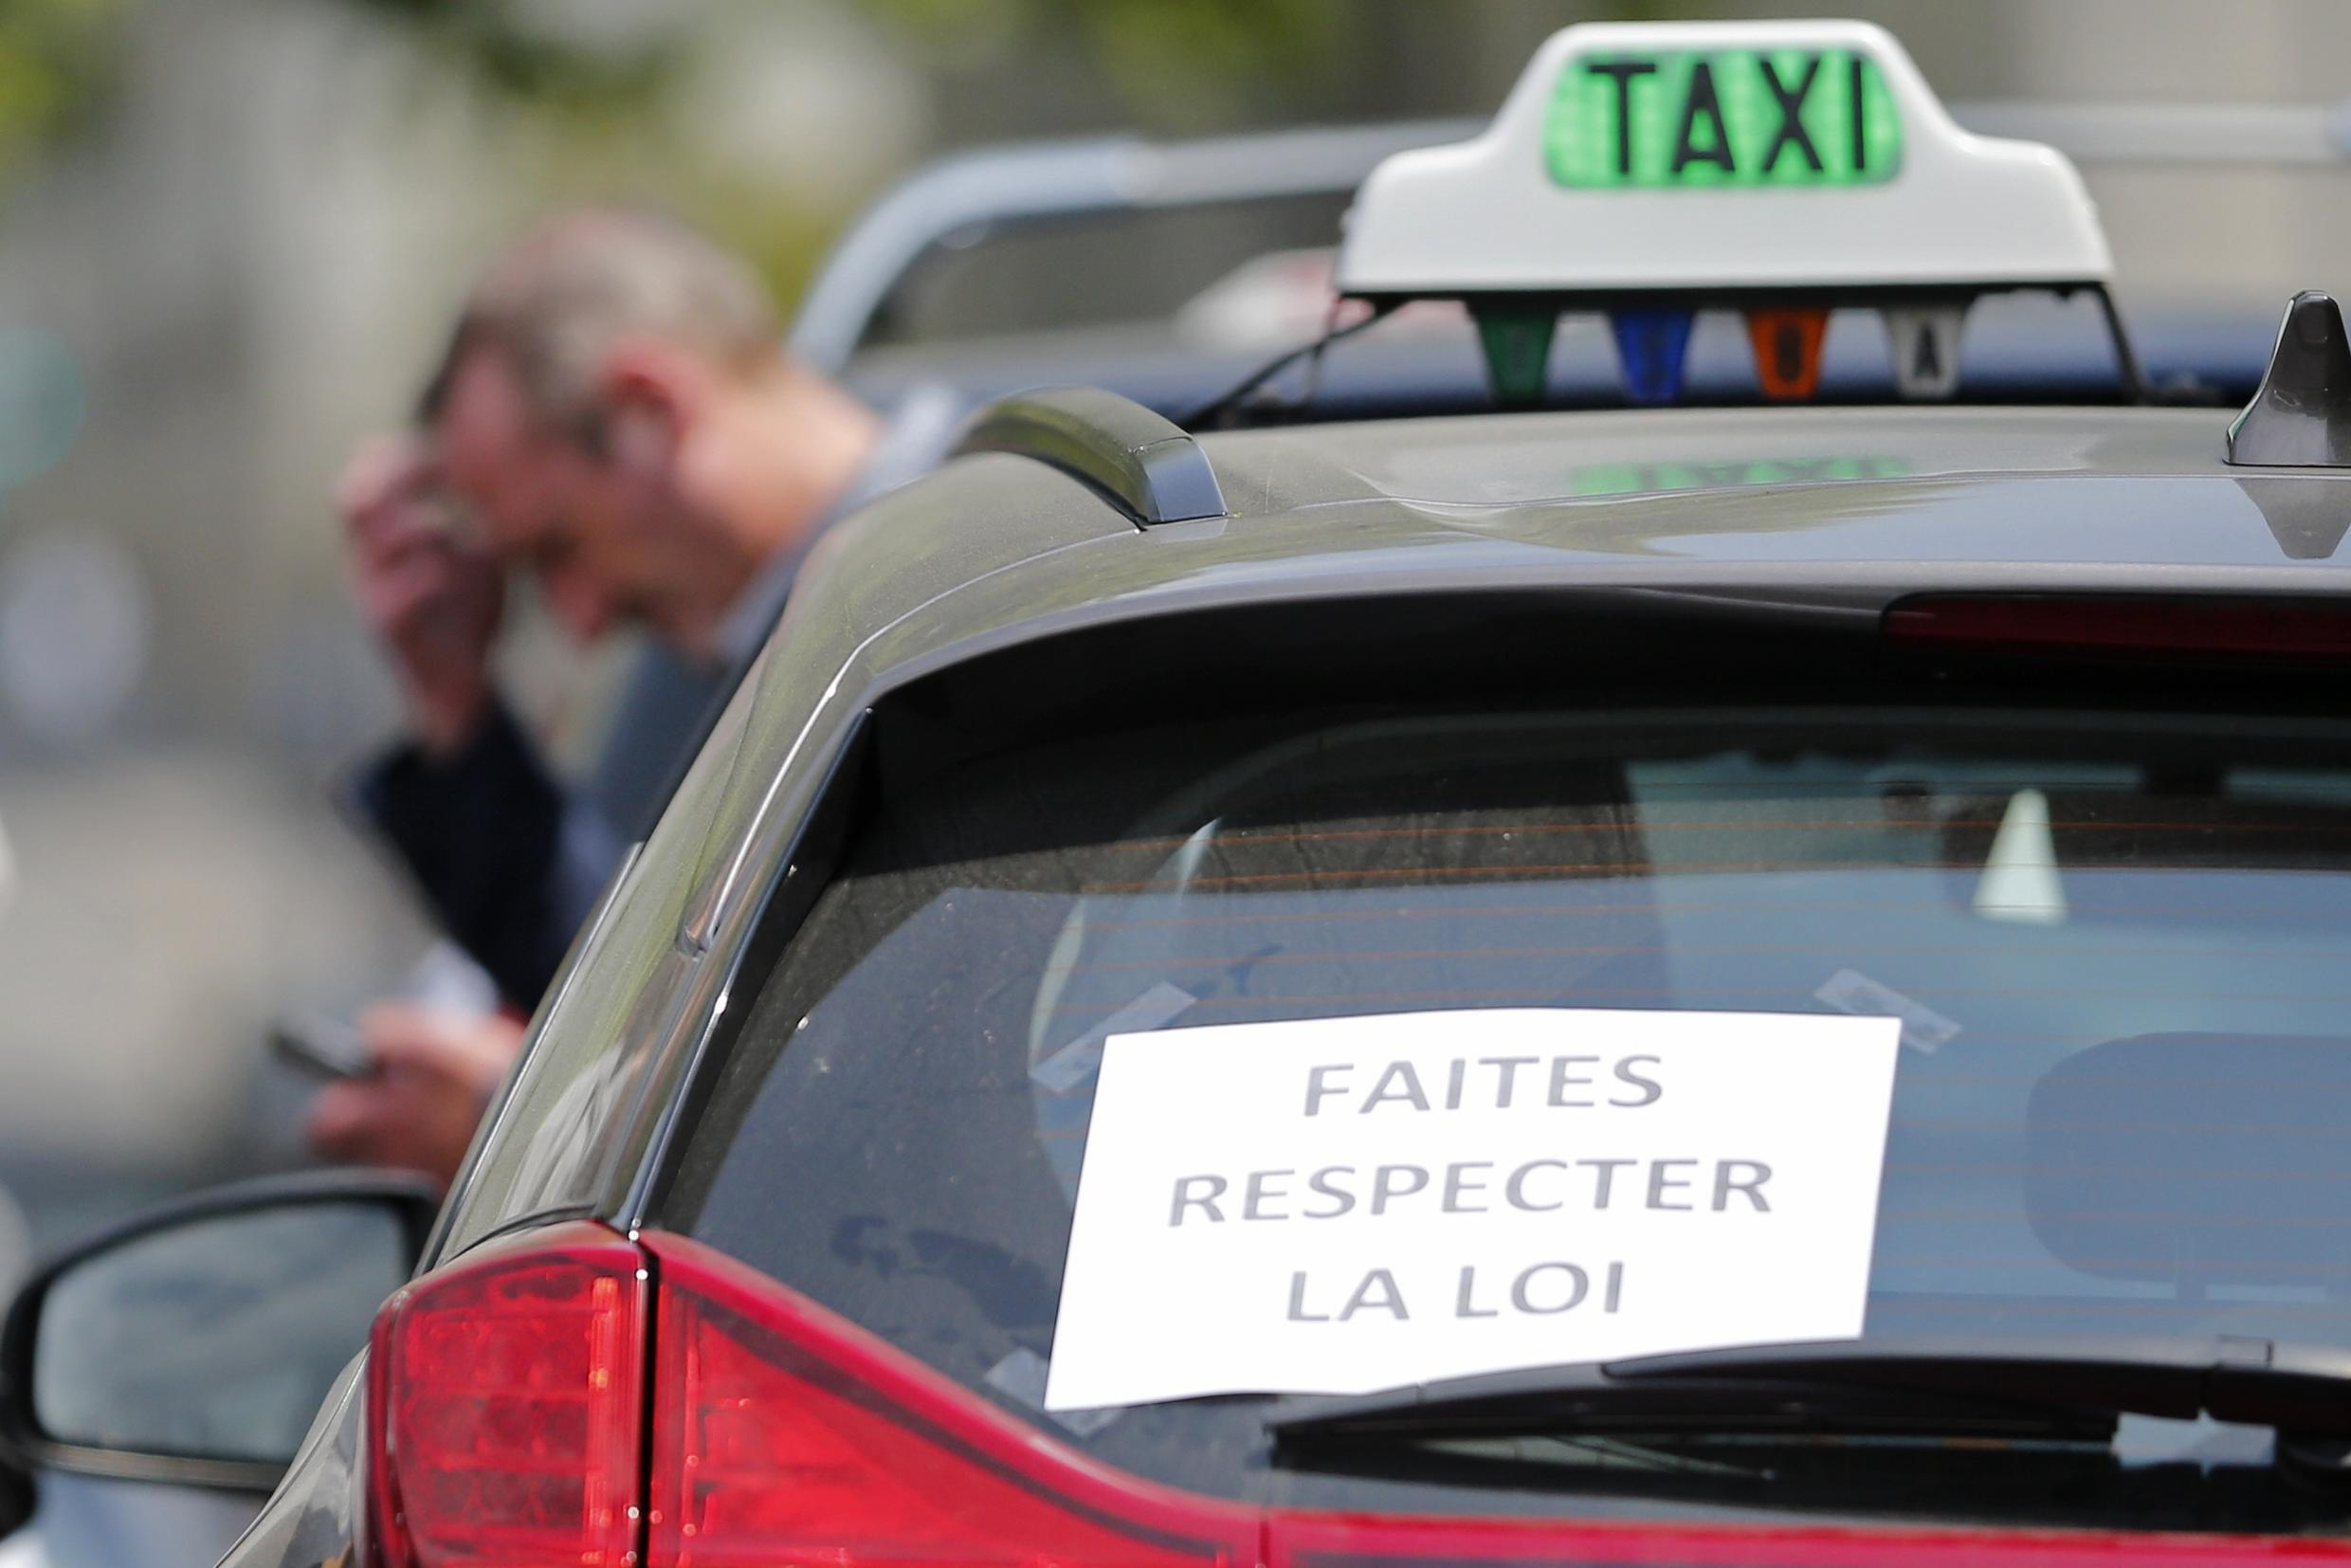 Taxi drivers demonstrate during a protest against car-sharing service Uber in Nantes, western France, June 9, 2015